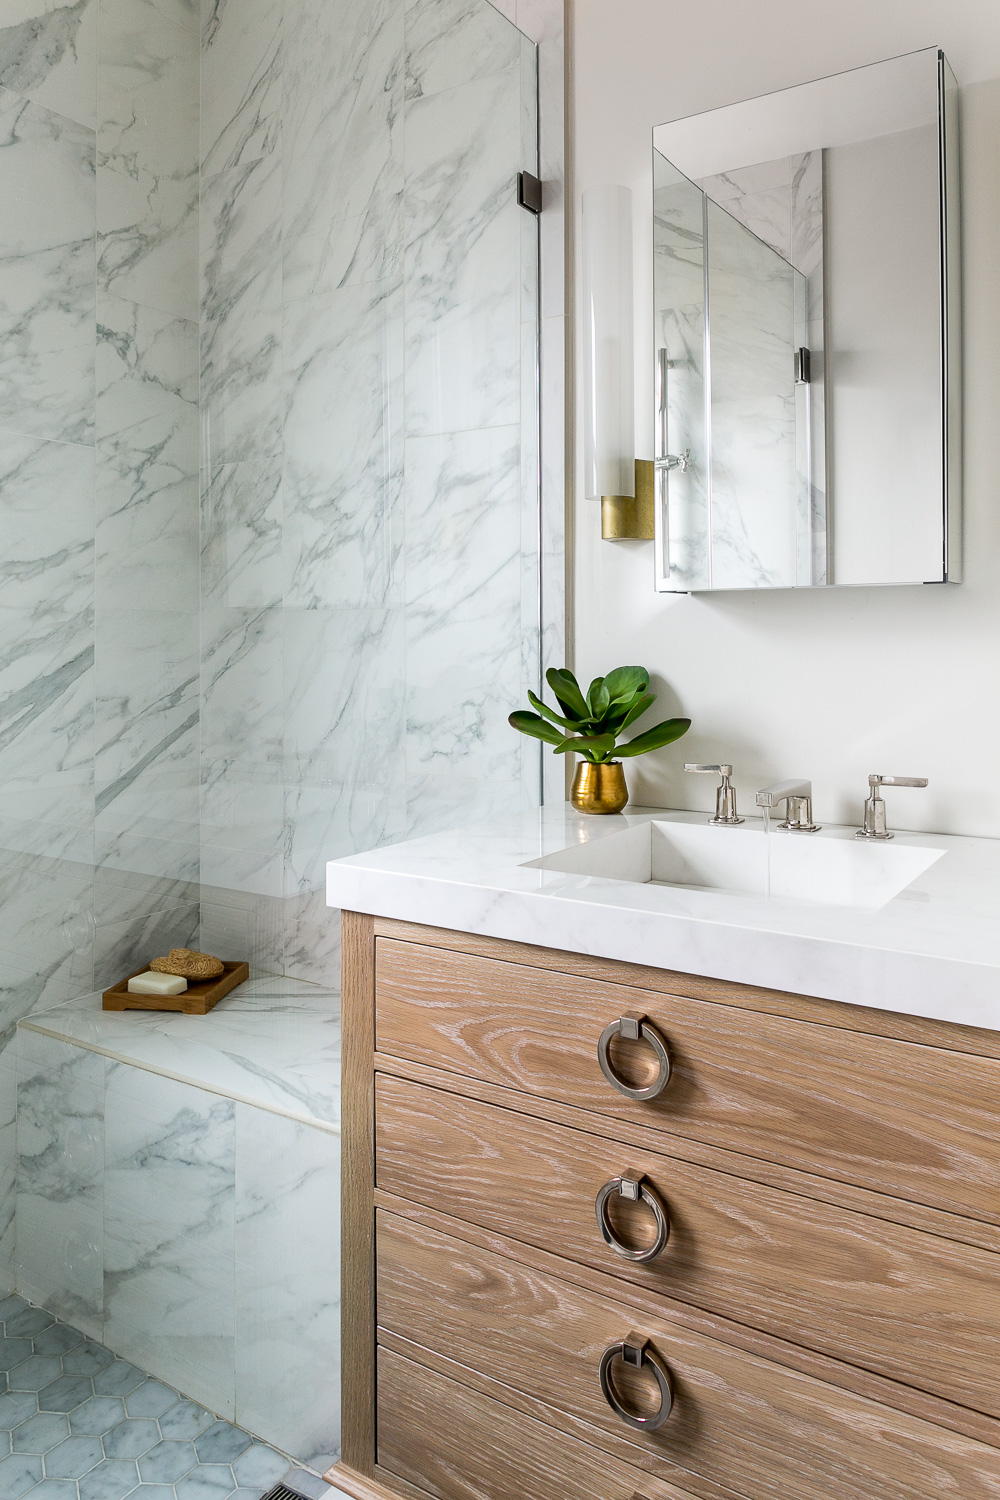 These Bathroom Design Trends Will Make a Surprising Comeback in 2019